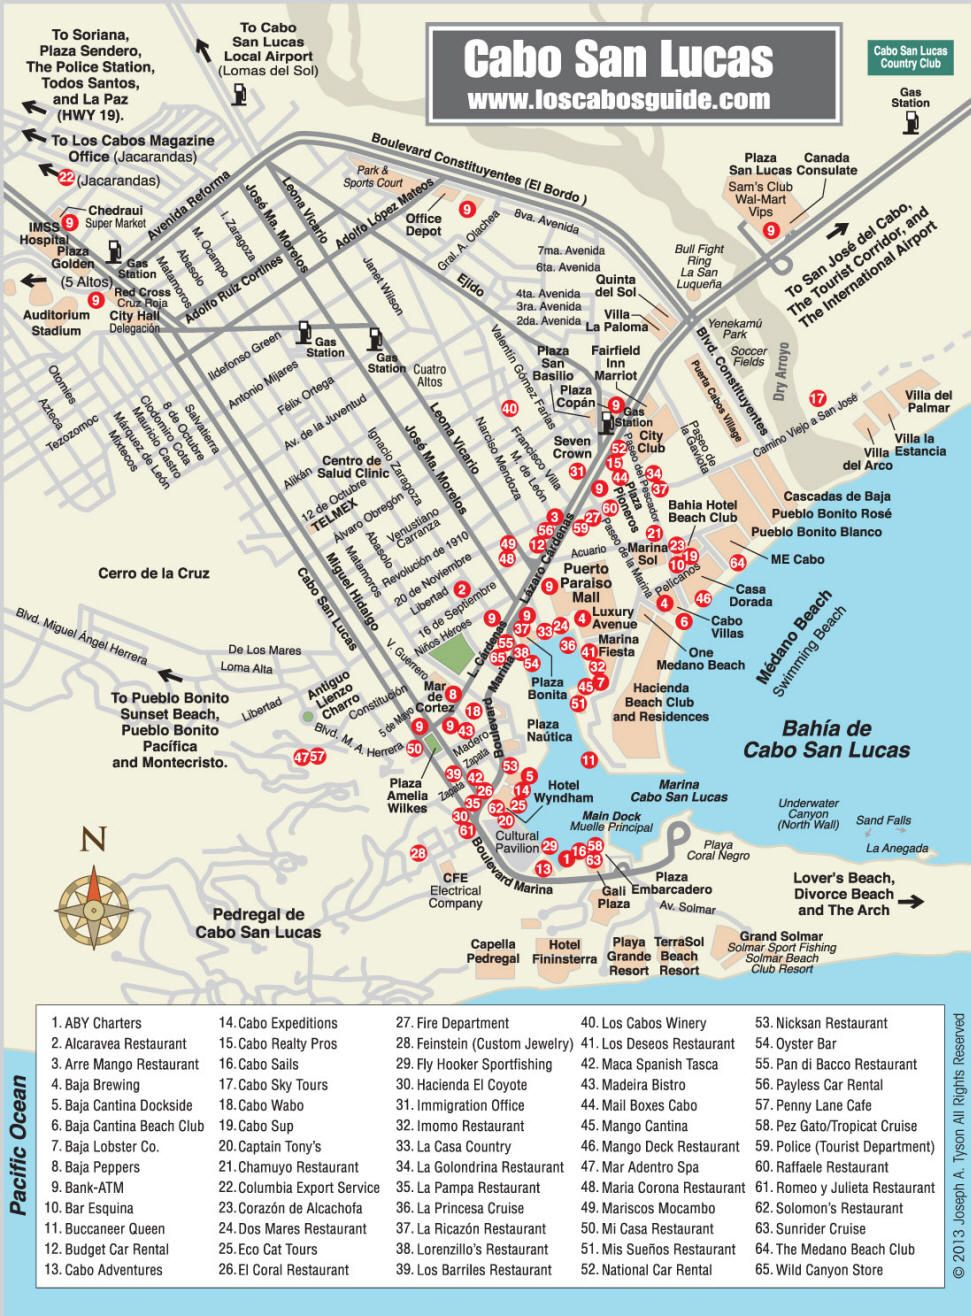 cabo san lucas map los cabos guide worth saving this guide for my next trip